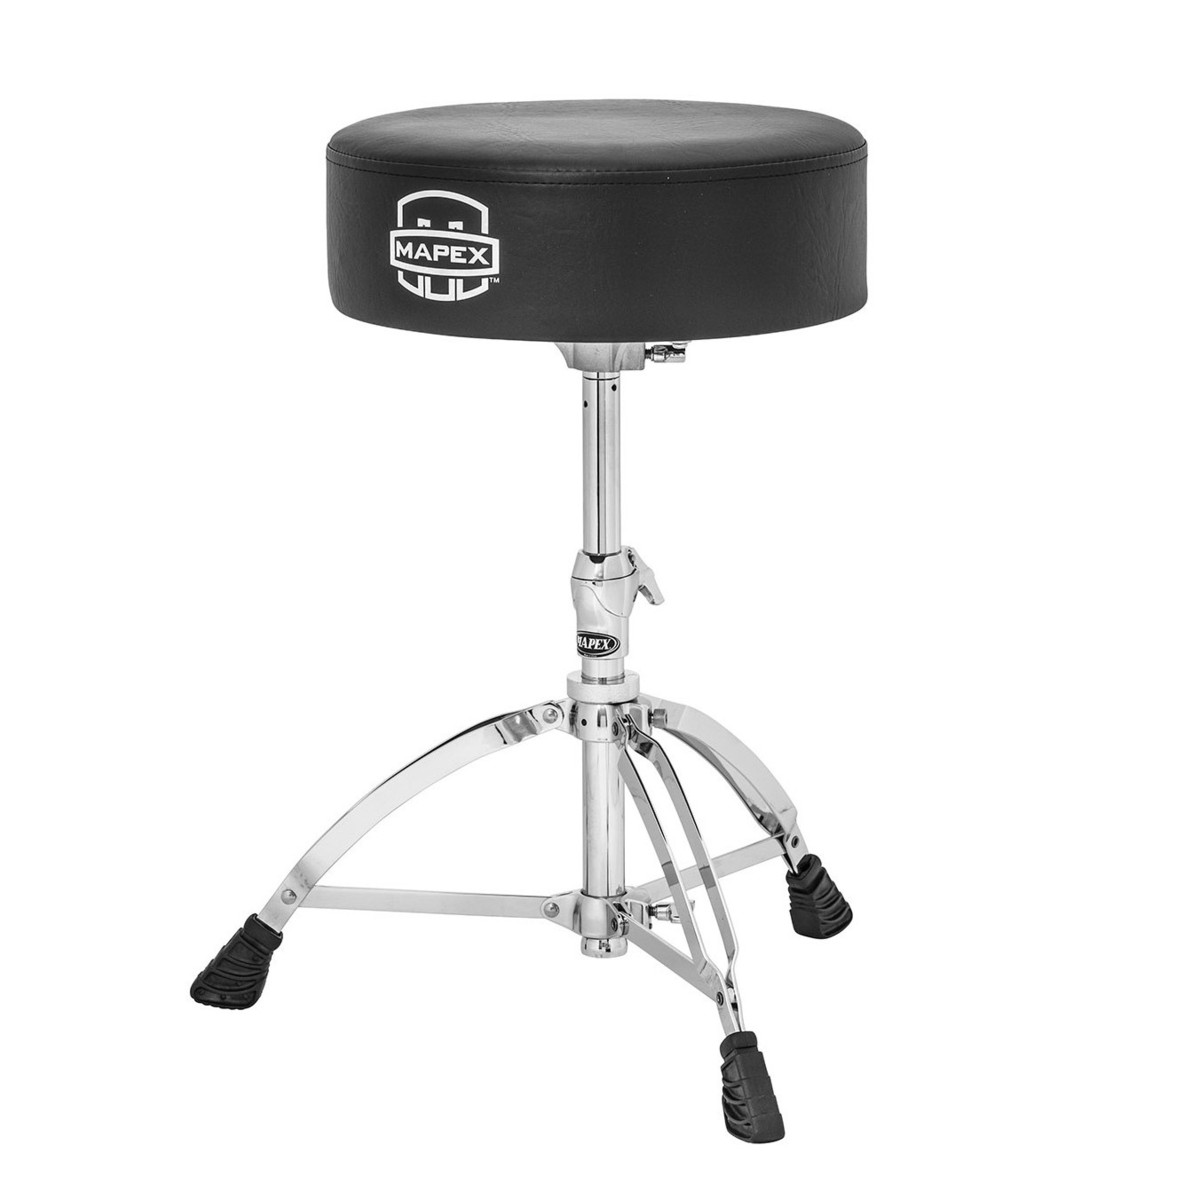 Image of Mapex T570 Double Braced Drum Throne